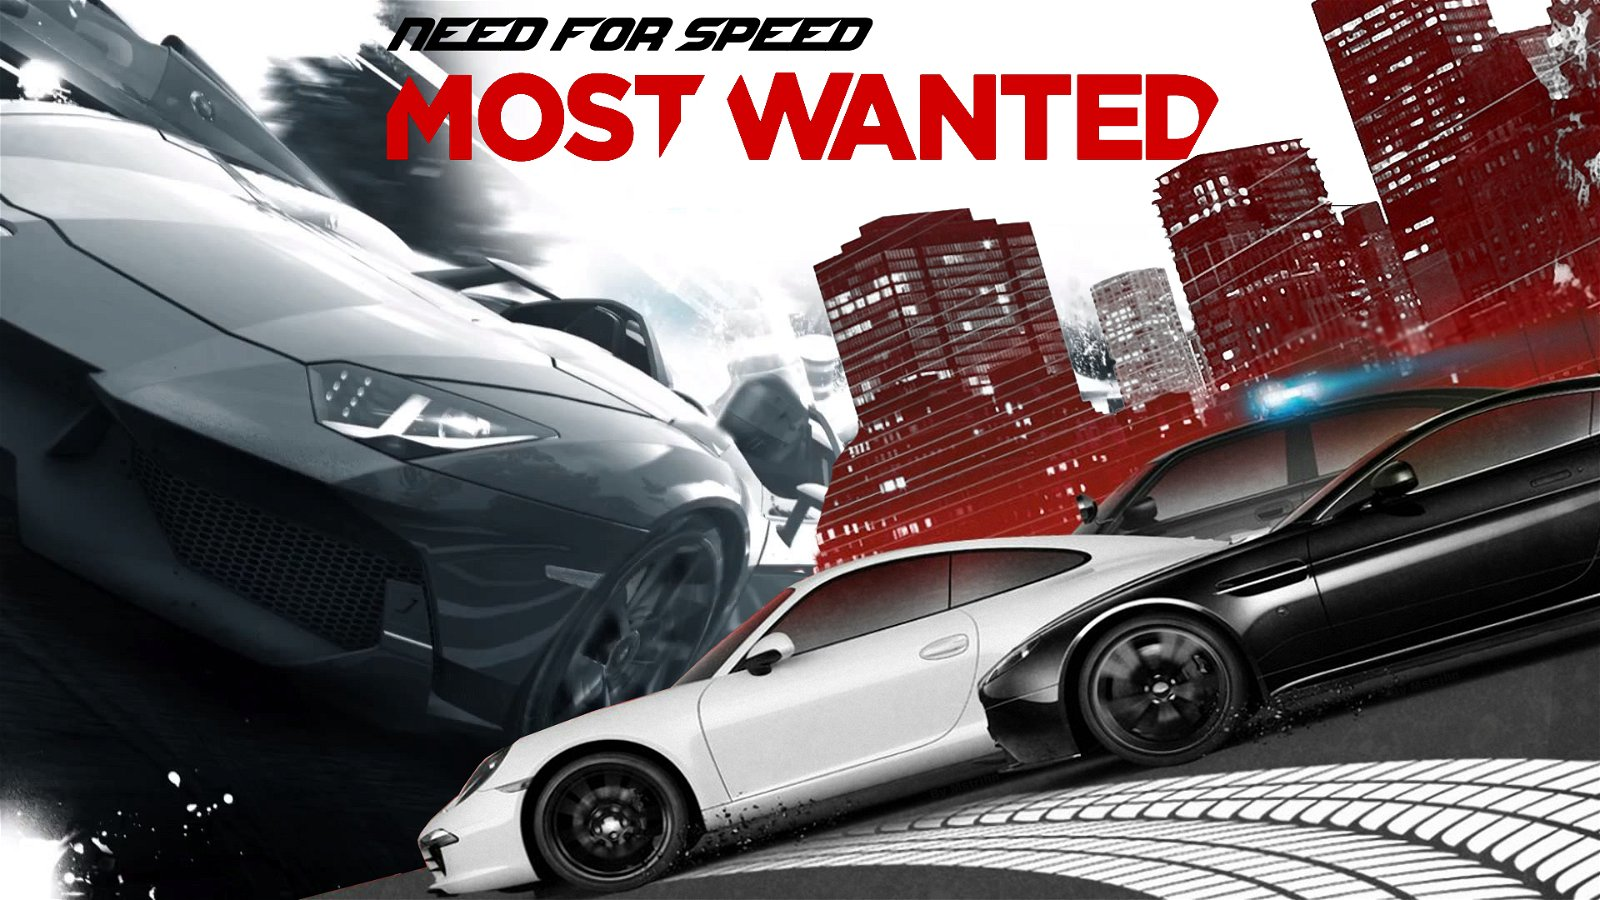 games_hdwallpaper_need-for-speed-most-wanted_91199